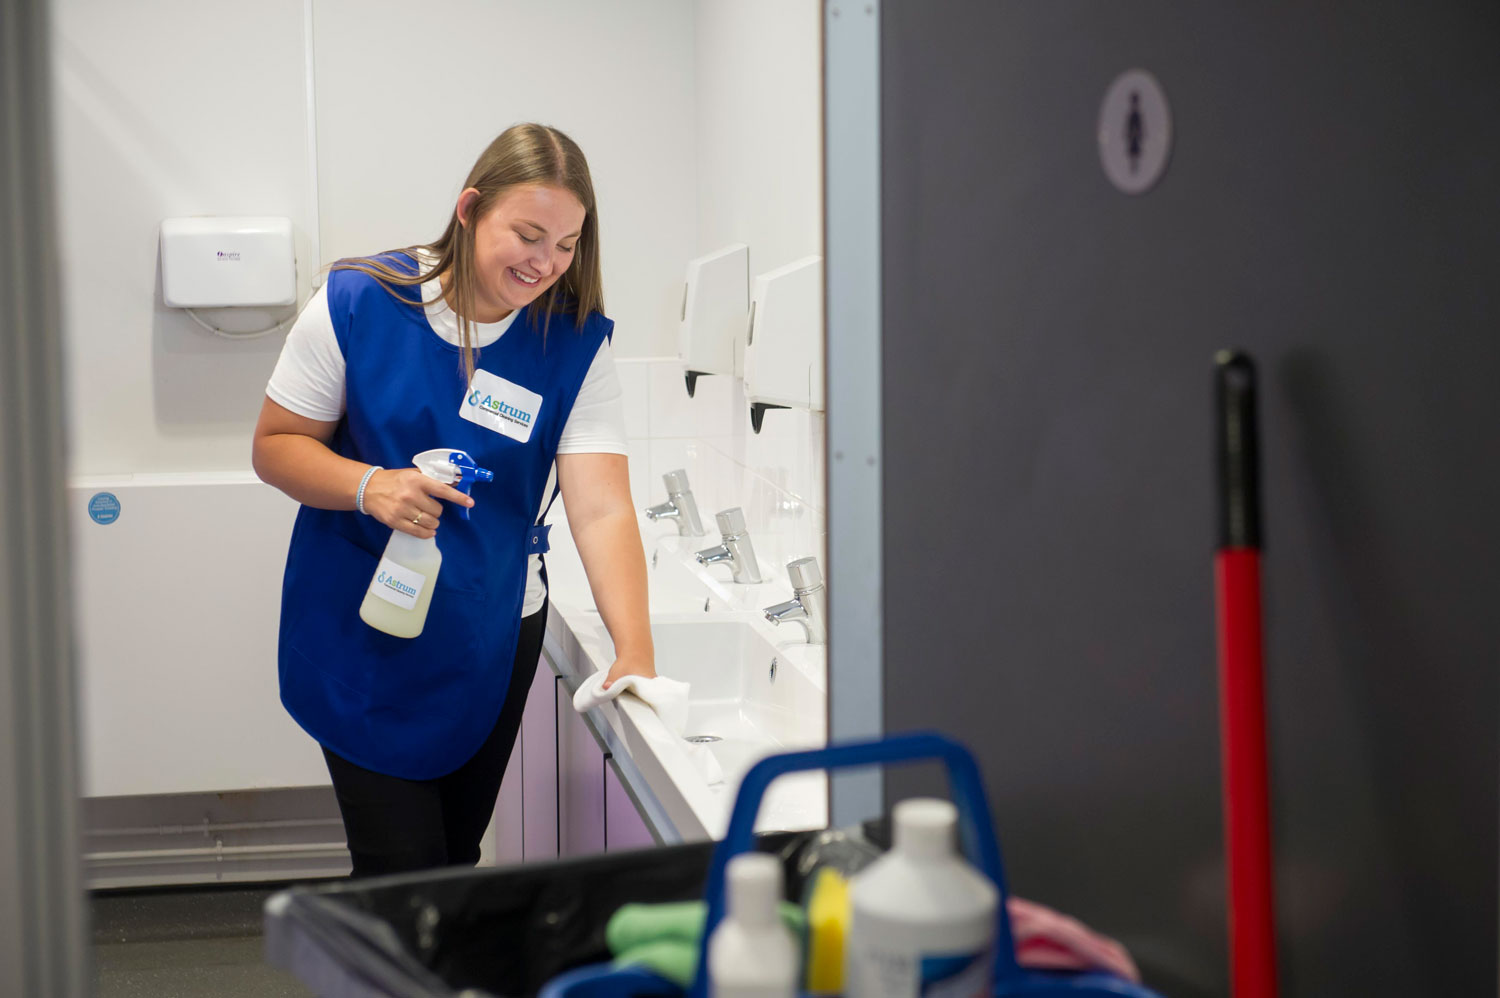 Astrum providing commercial washroom cleaning products